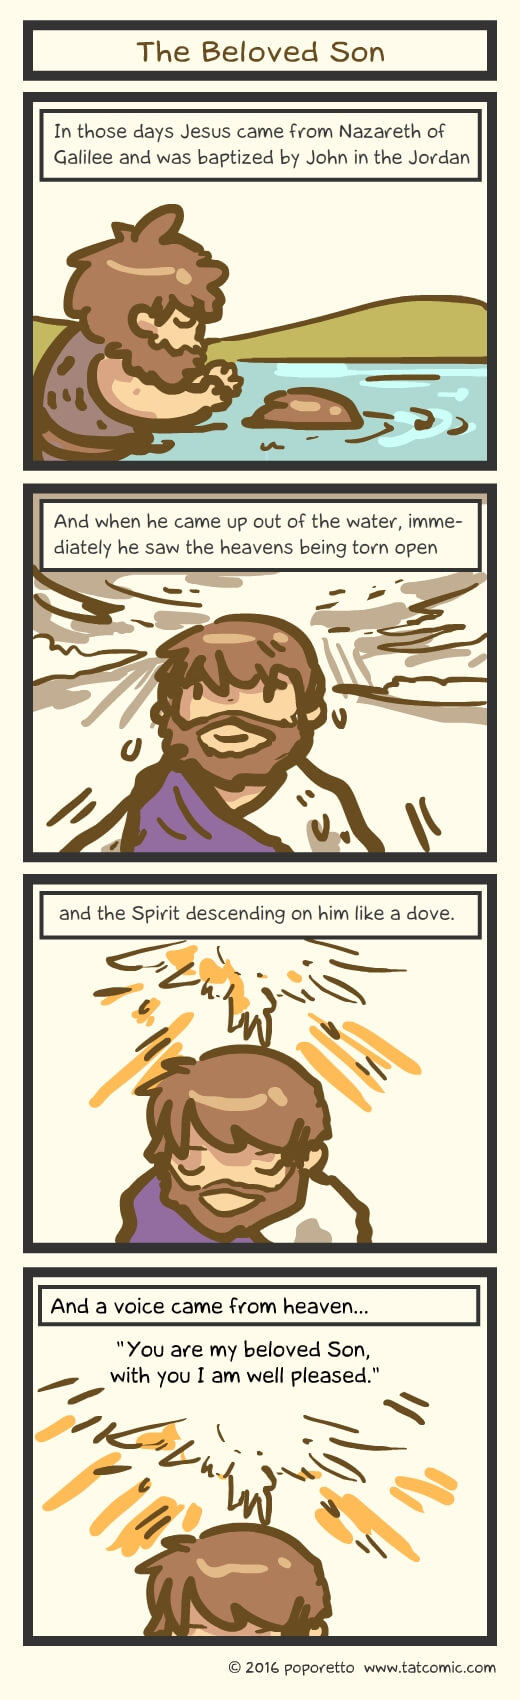 Christian Comic Strip the Gospel of Mark Book of Mark Jesus is the beloved son of God